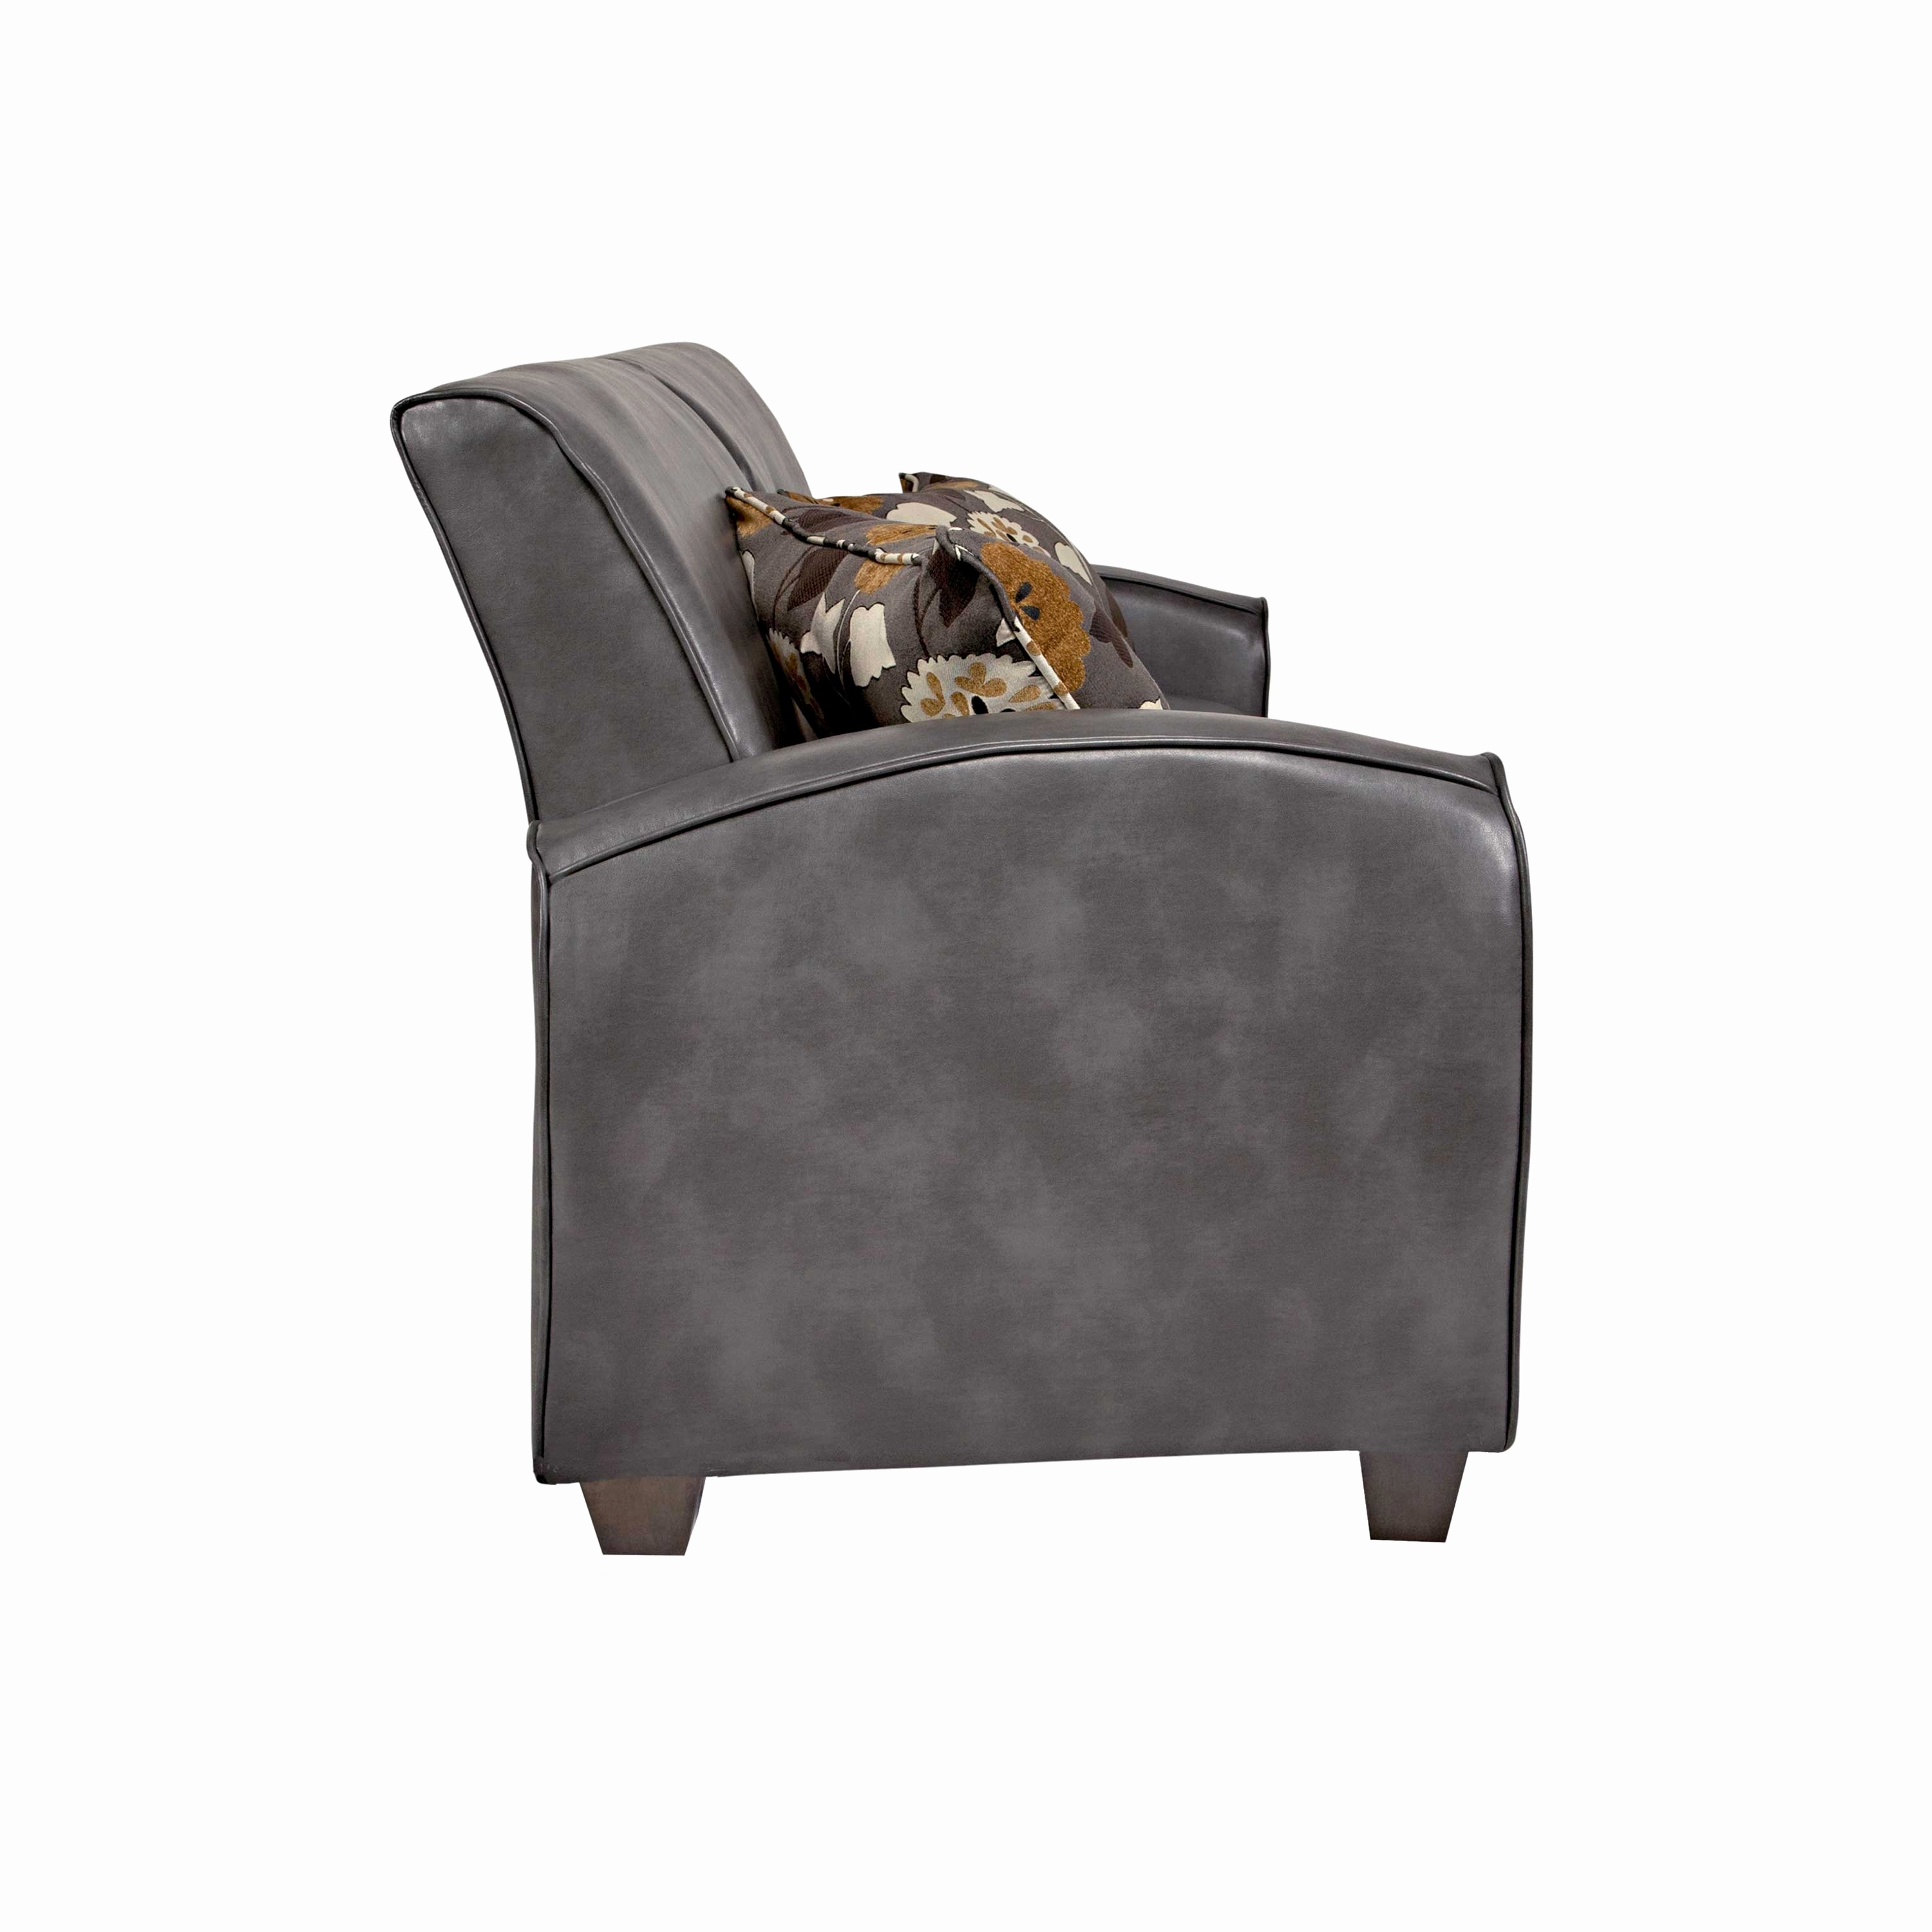 Great Charcoal Grey Leather Sofa 43 About Remodel Living Room Sofa Ideas with Charcoal Grey Leather Sofa